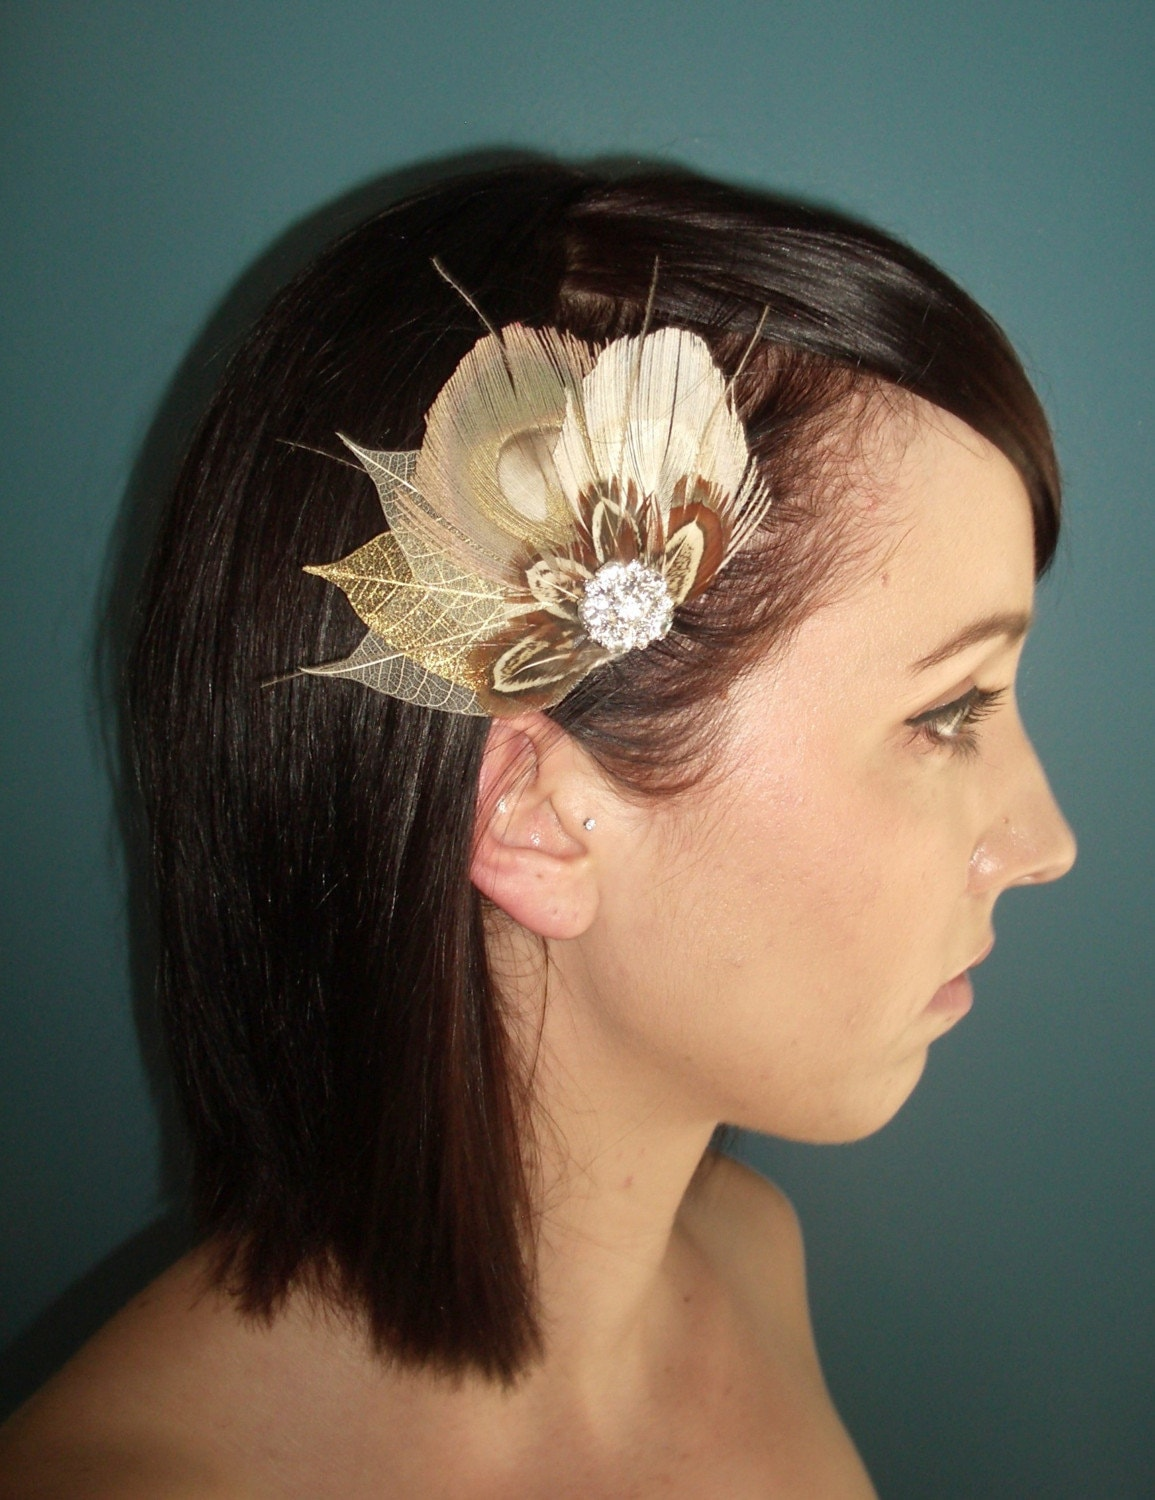 Fall Feather Fascinator  Bridal or Special Occasion by TessaKim from etsy.com